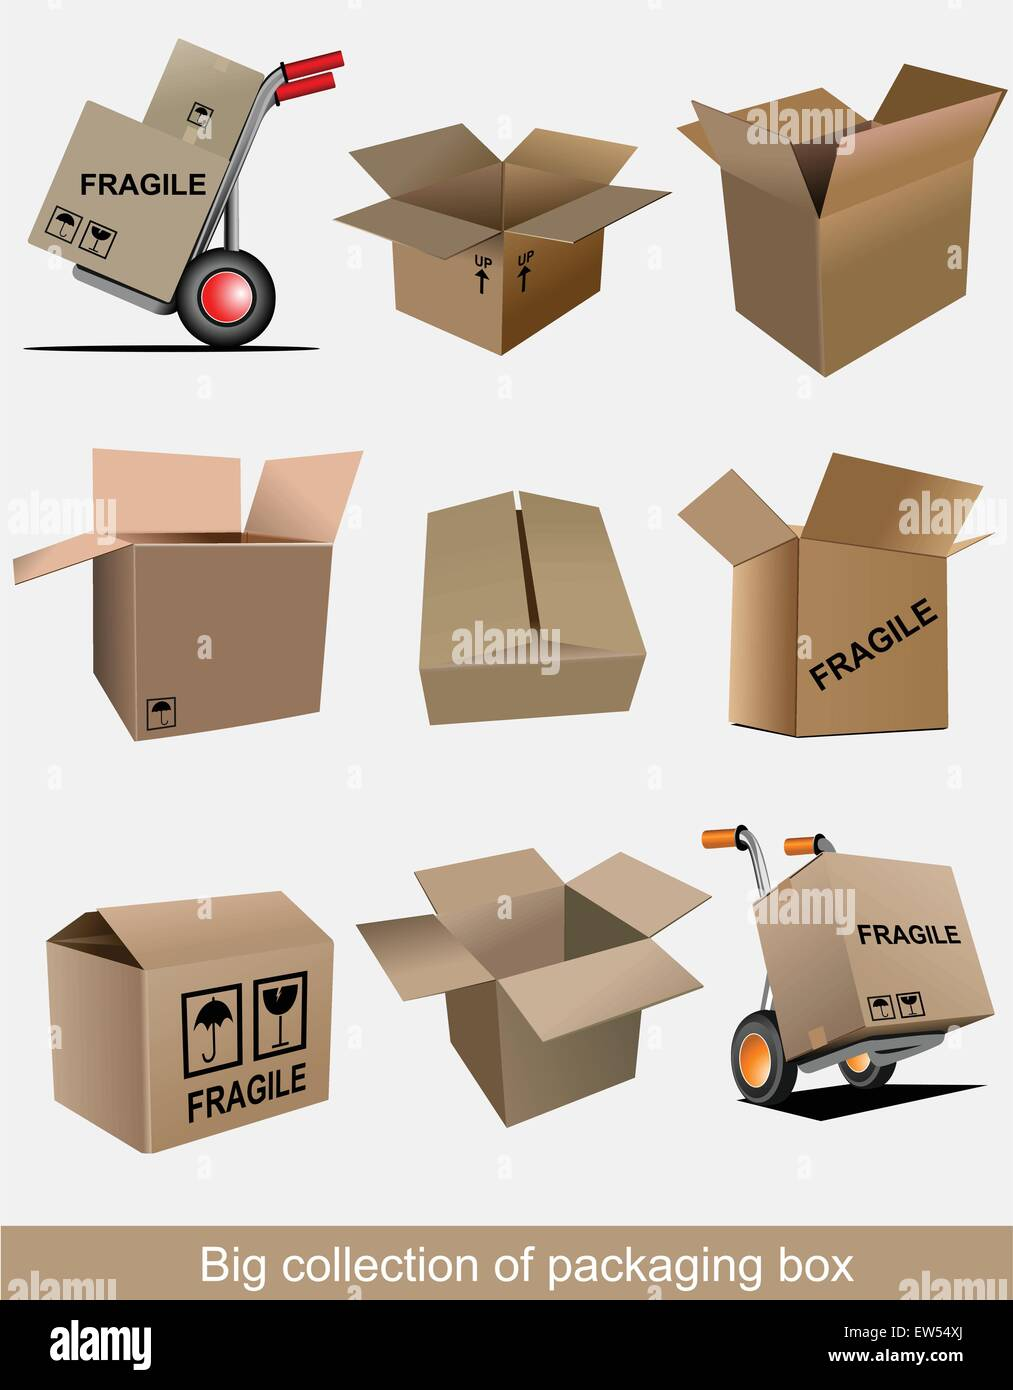 Big collection of carton packaging boxes. Vector illustration - Stock Vector